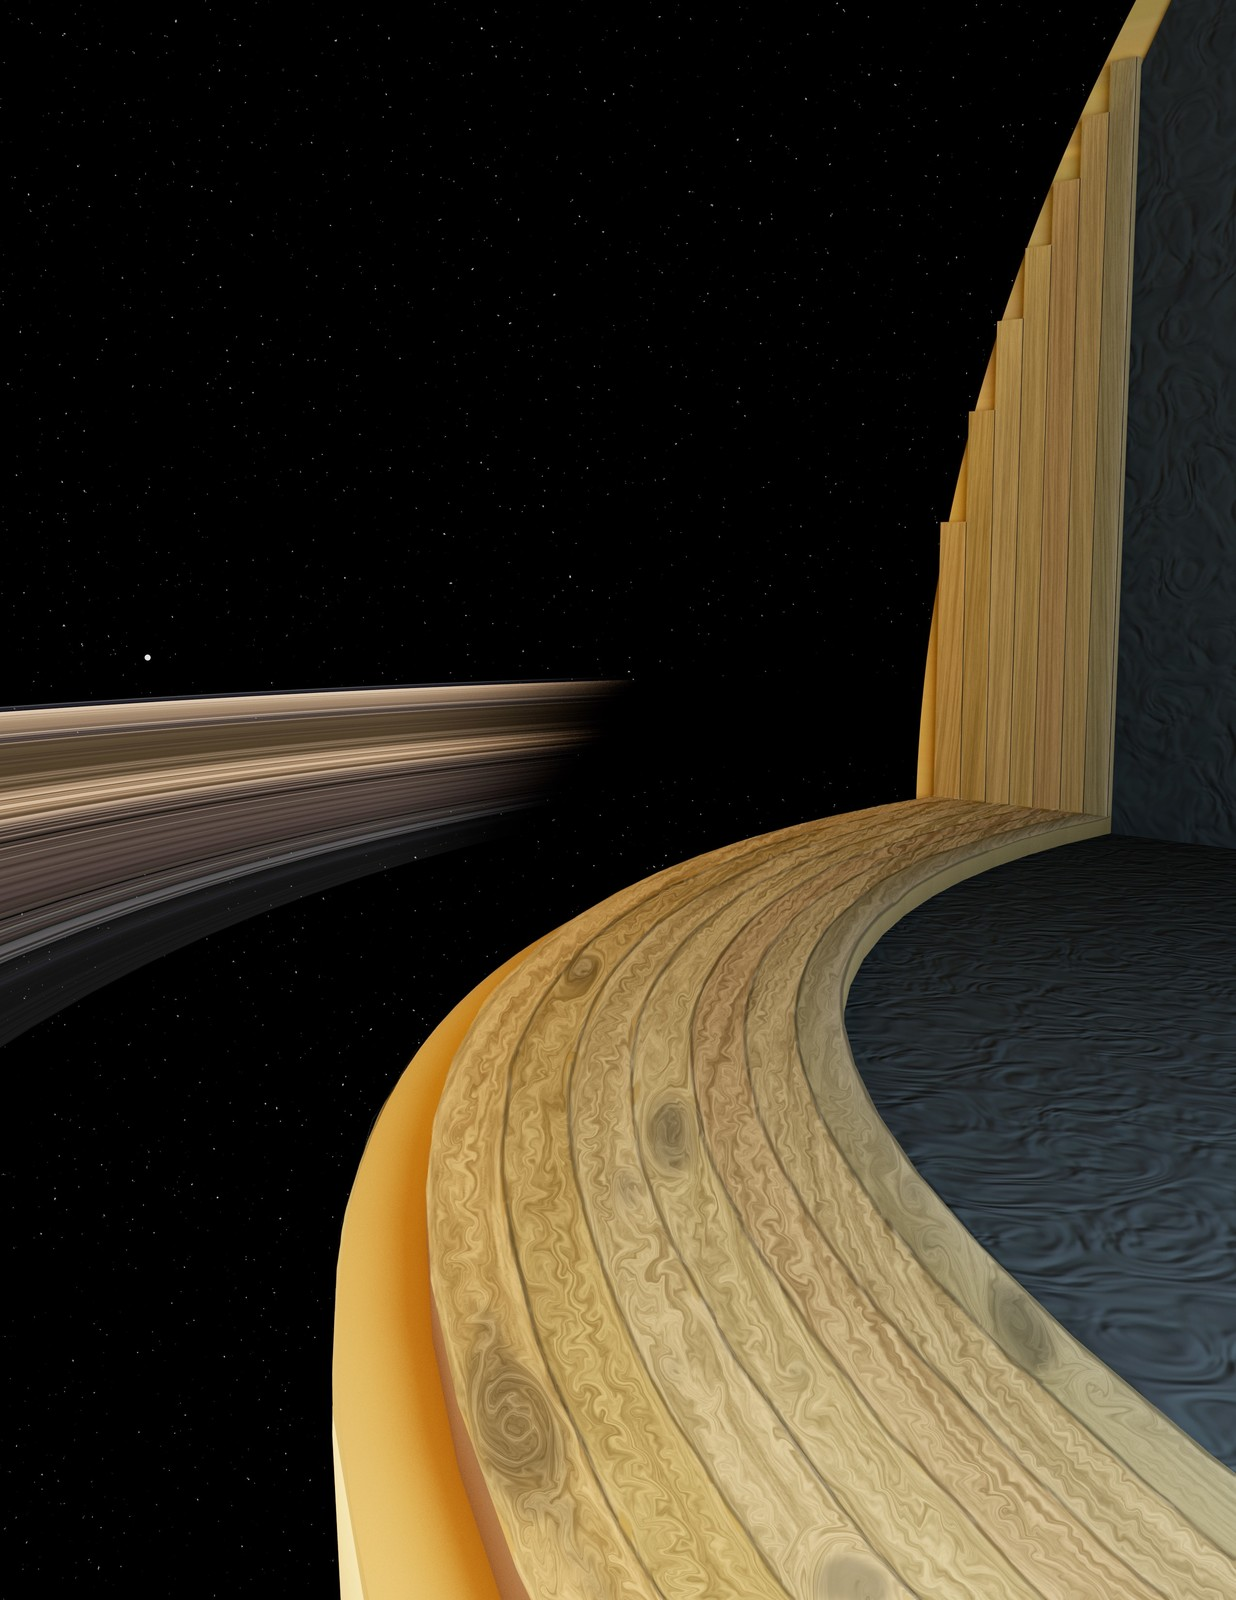 The storms within Saturn